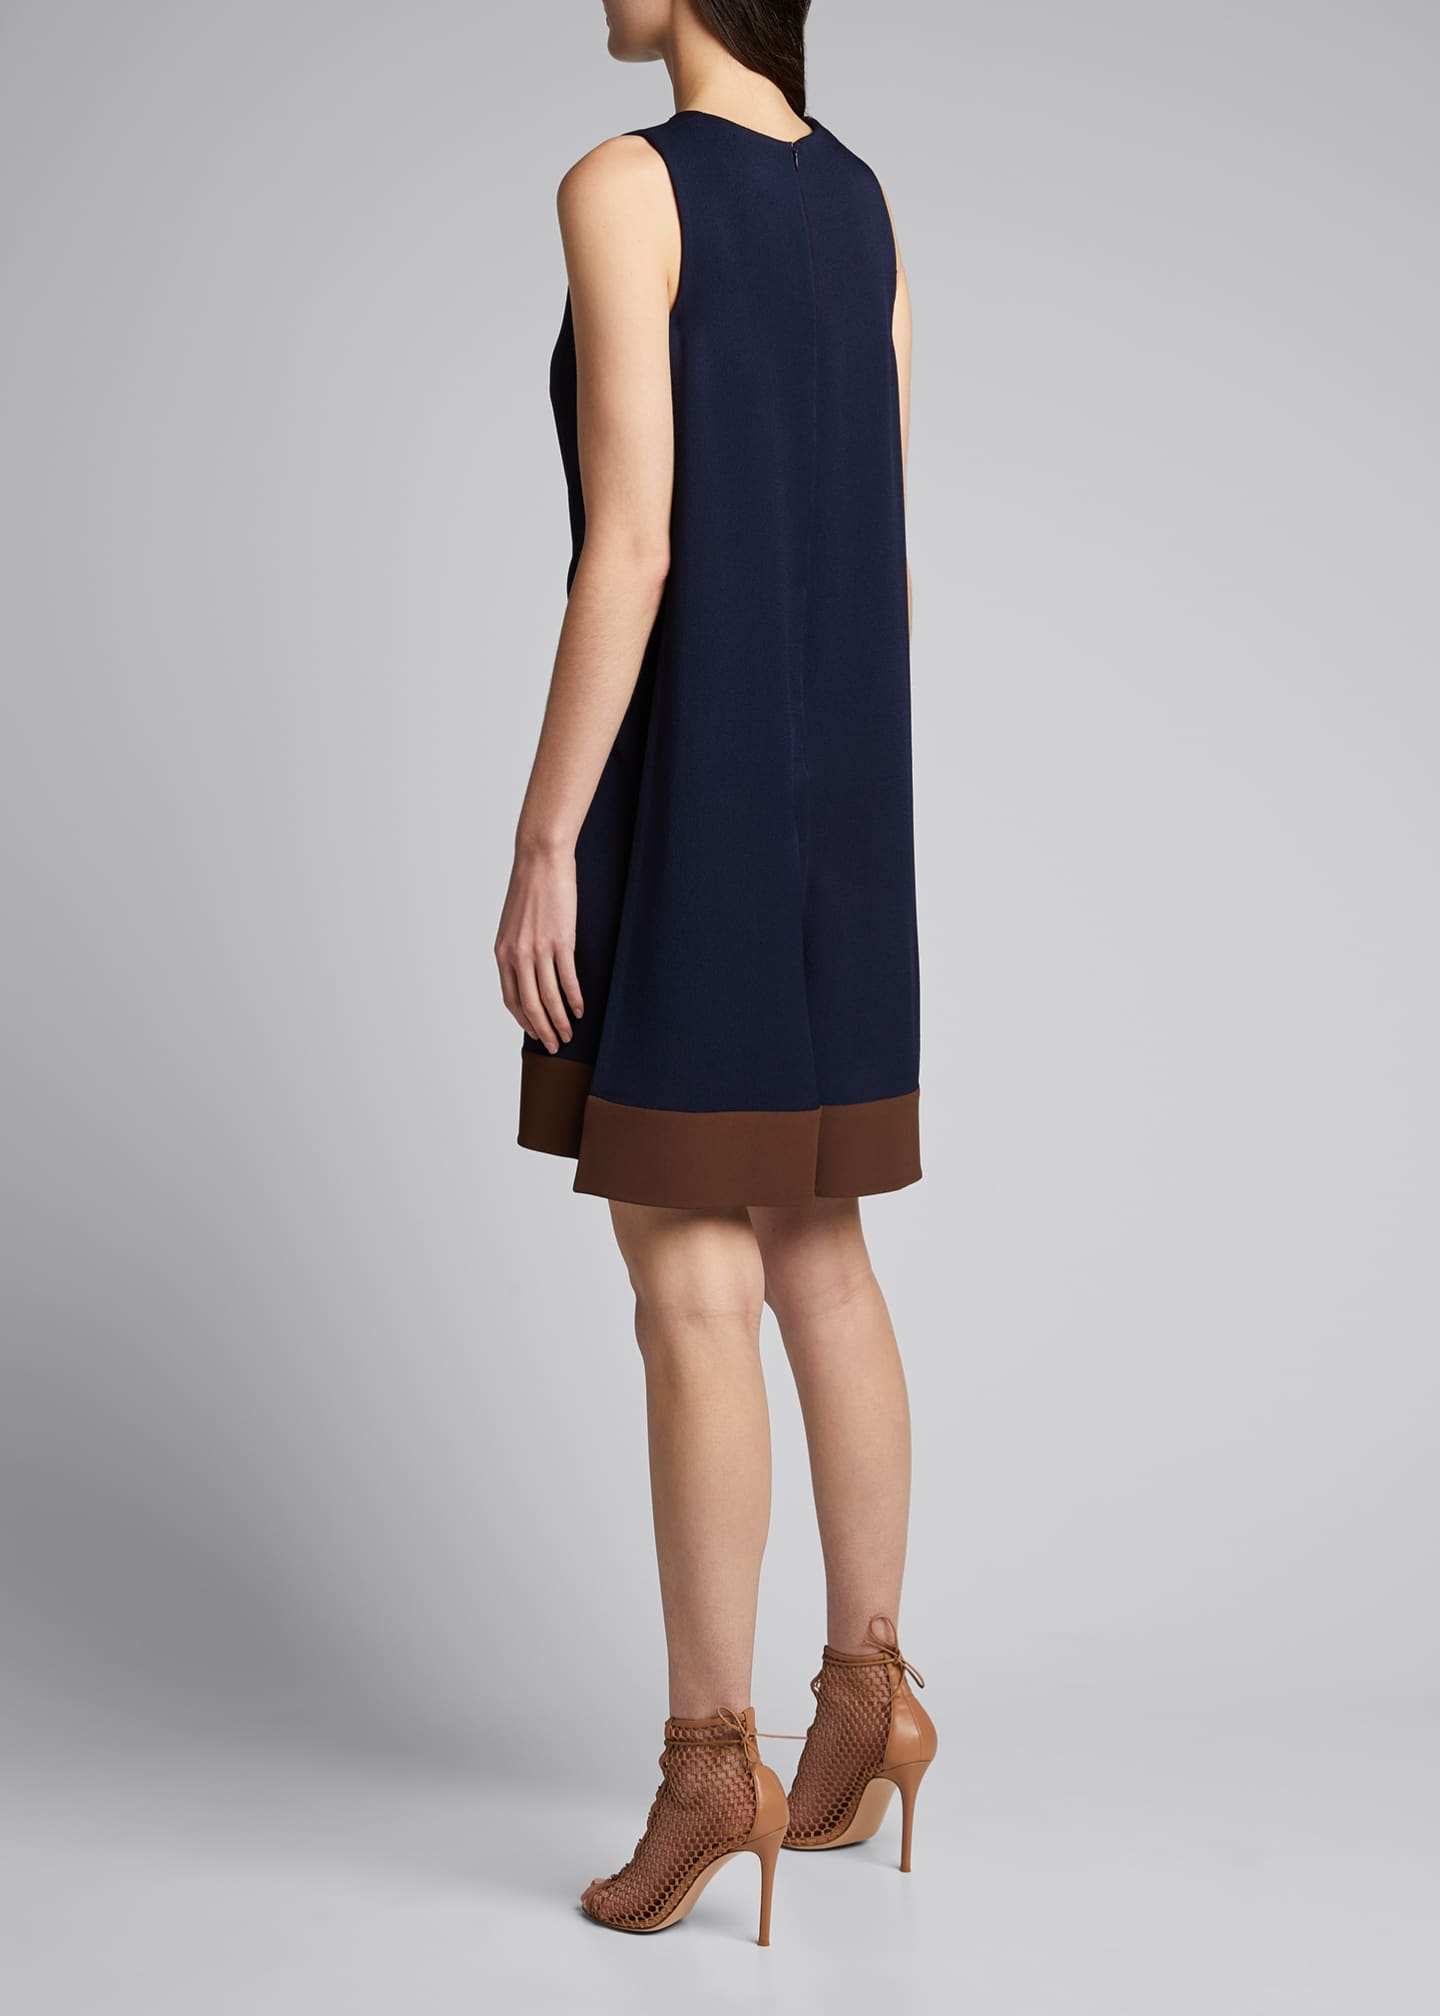 Image 2 of 5: Two-Tone Crepe Dress